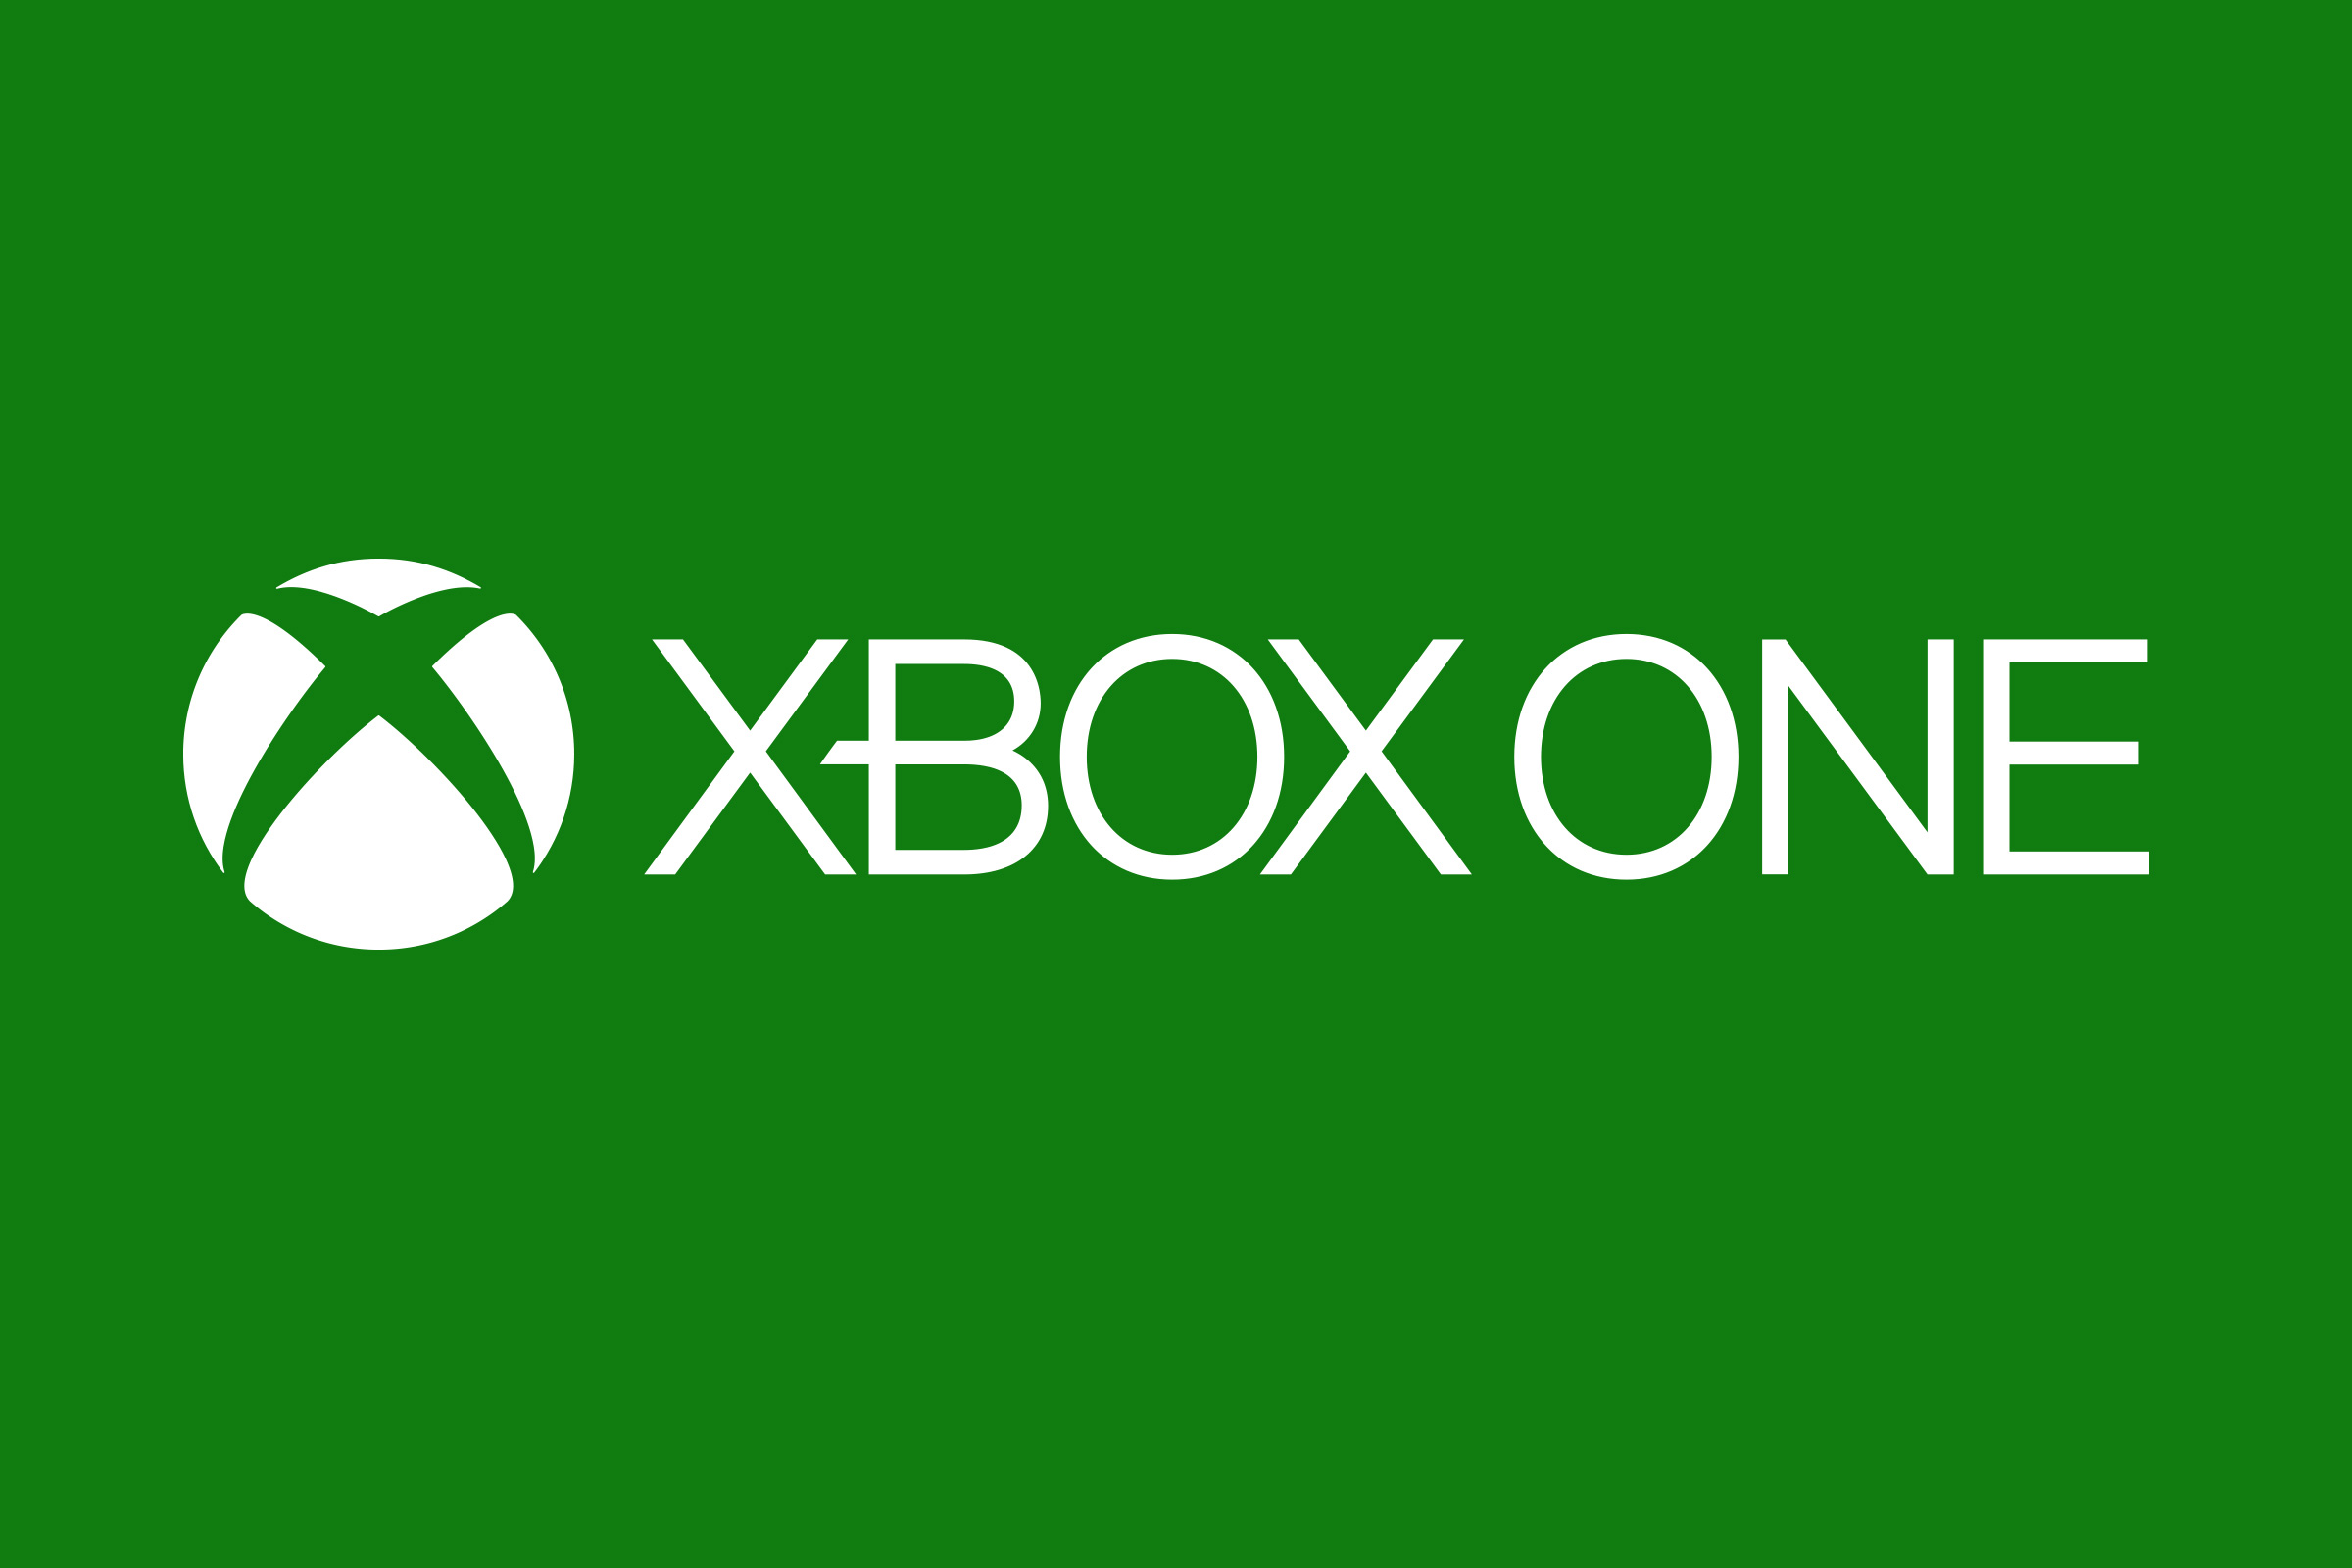 Xbox One Logo Png (106+ images in Collection) Page 2.